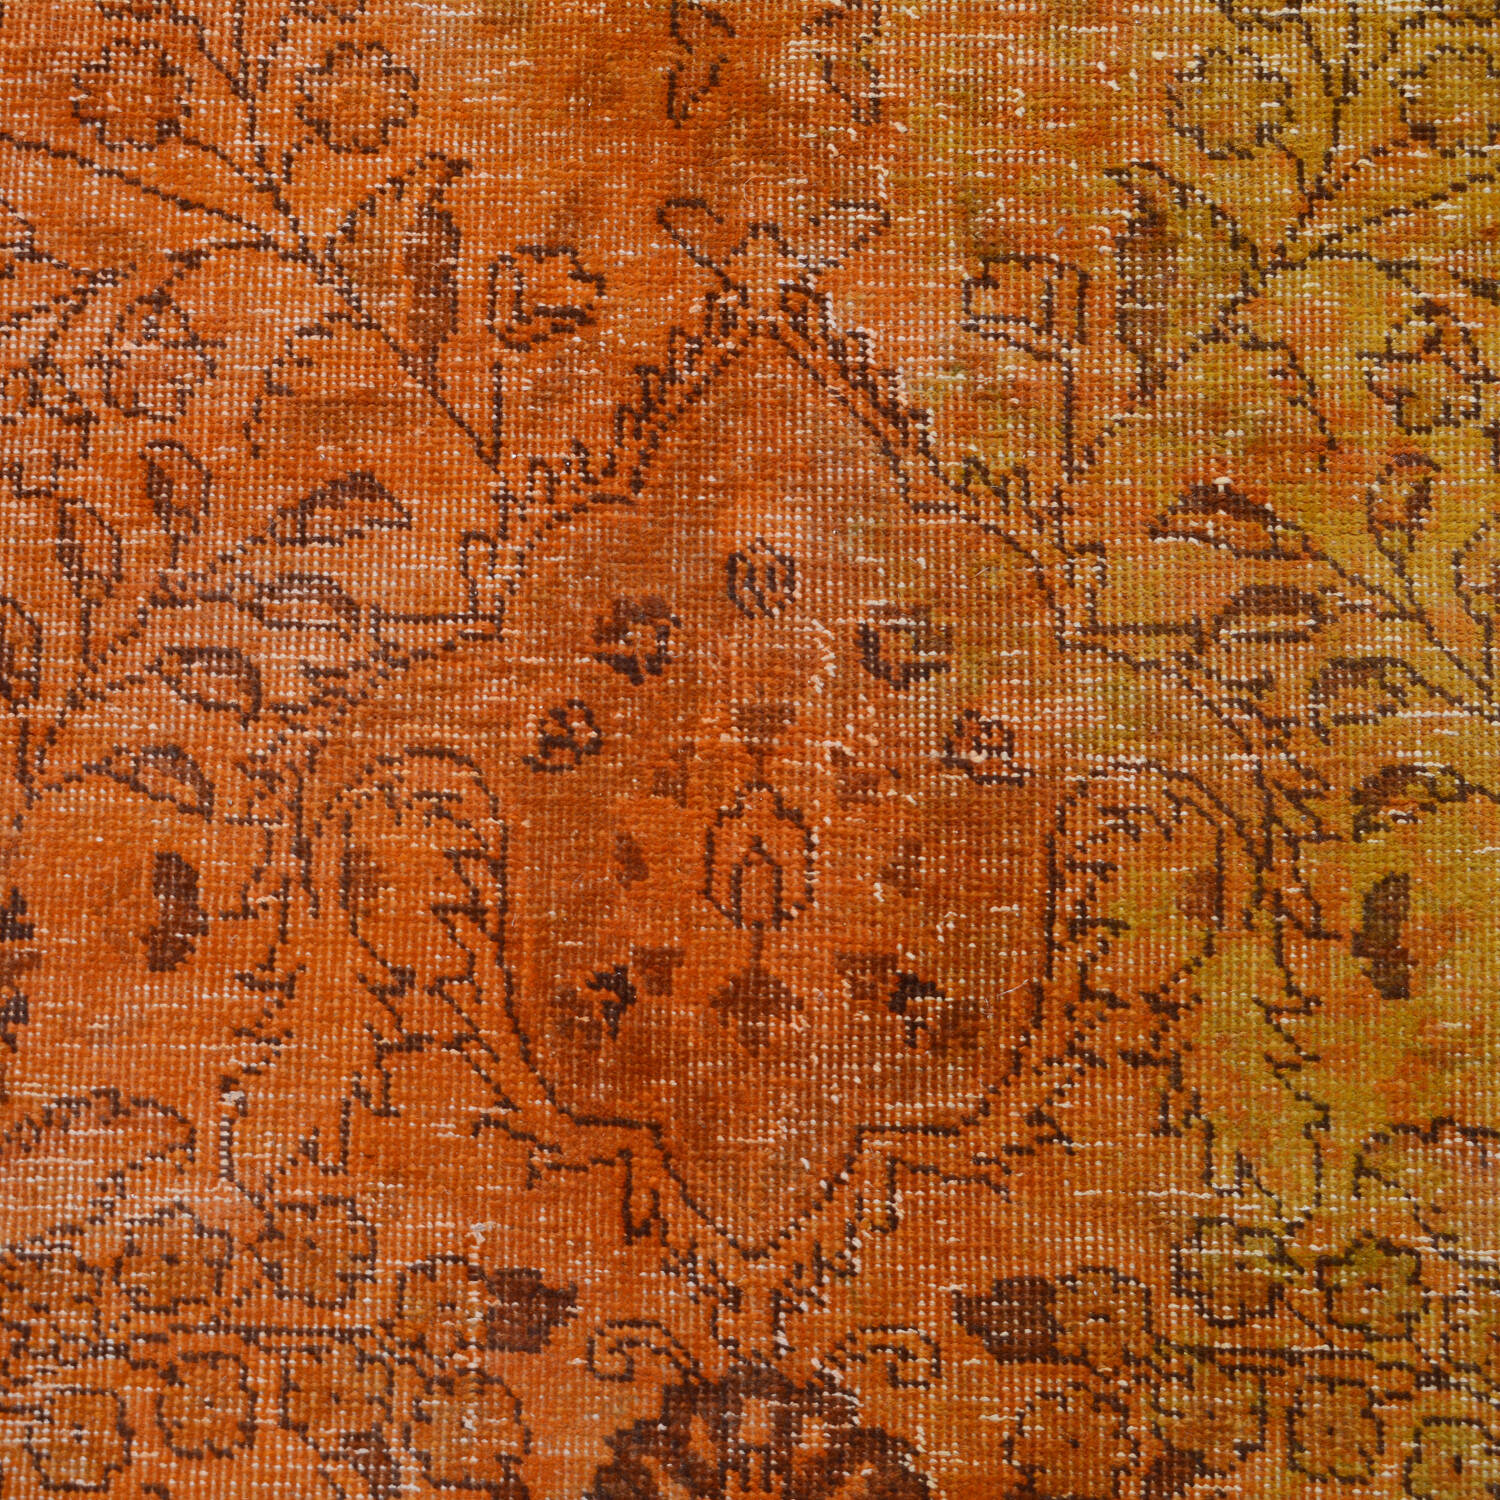 Antique Over Dyed Floral Tabriz Persian Area Rug 10x13 image 4